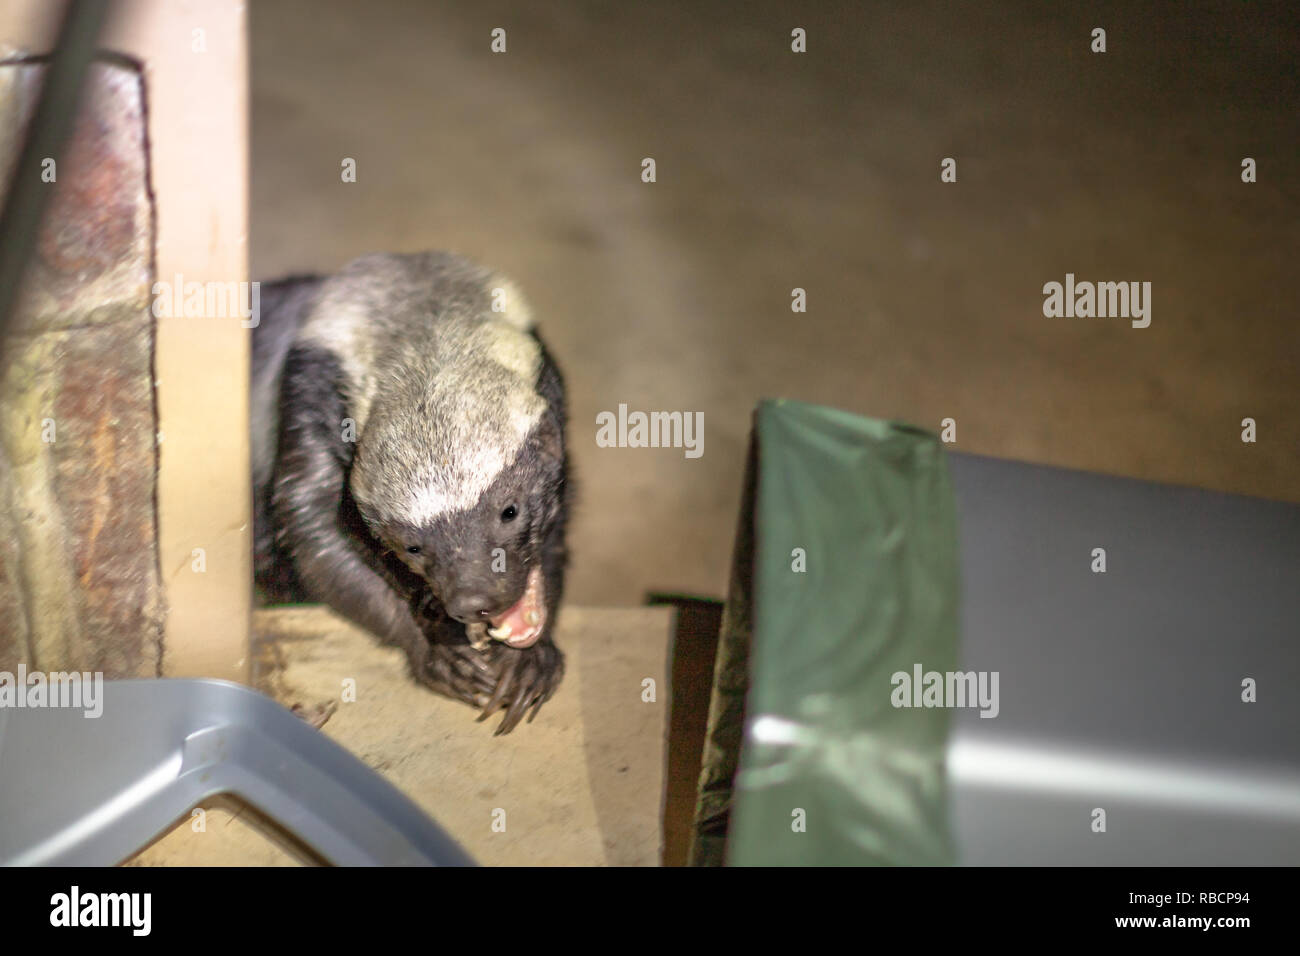 Honey badger eating food from a dustbin of a park in South Africa. Omnivorous predator, rare to see in nature. It is fearless and therefore aggressive and dangerous. Mellivora Capensis species. - Stock Image